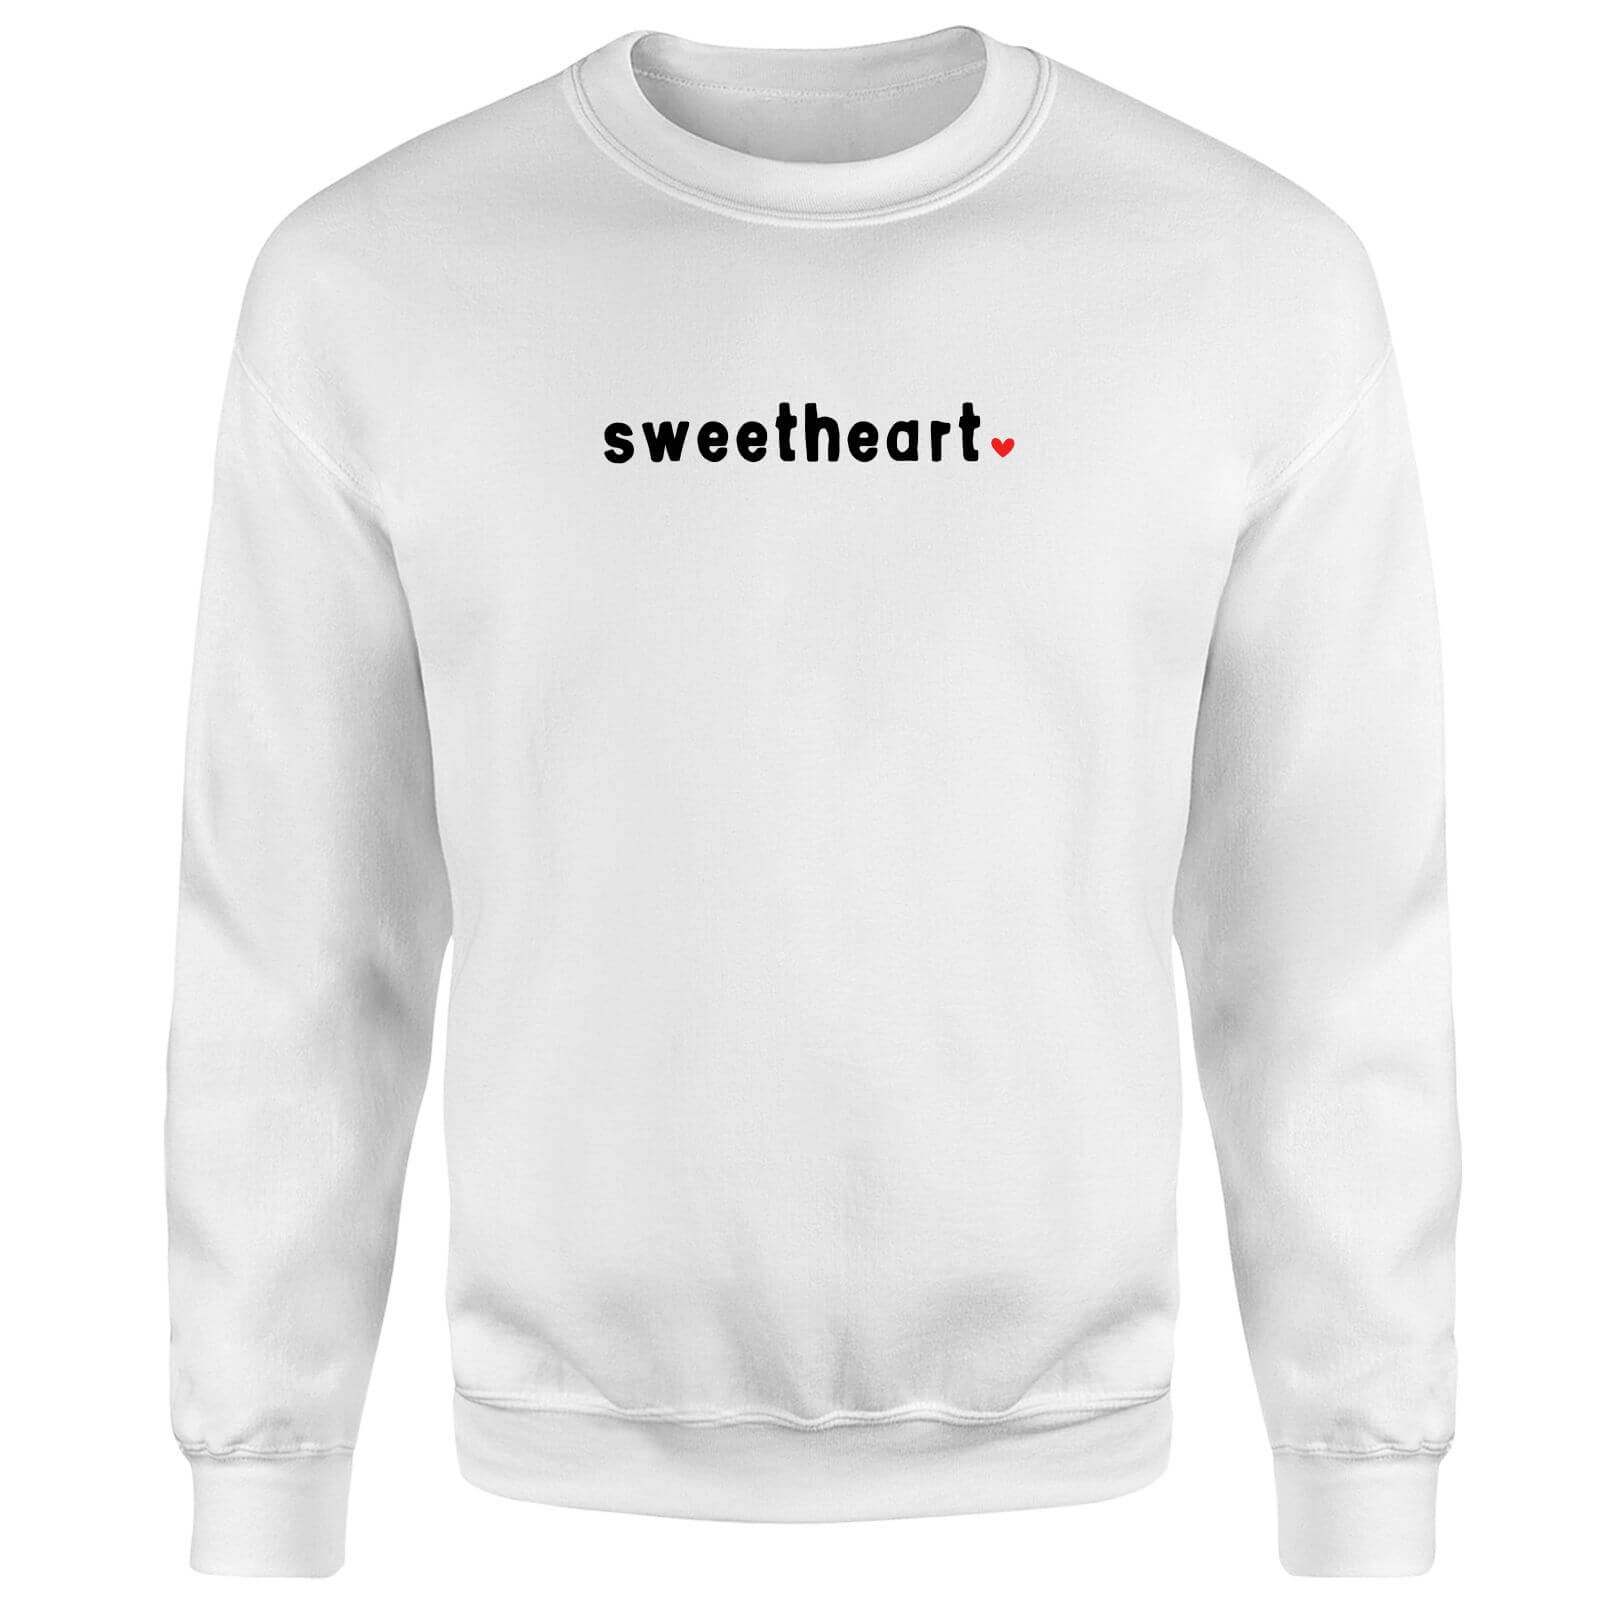 Sweetheart Sweatshirt - White